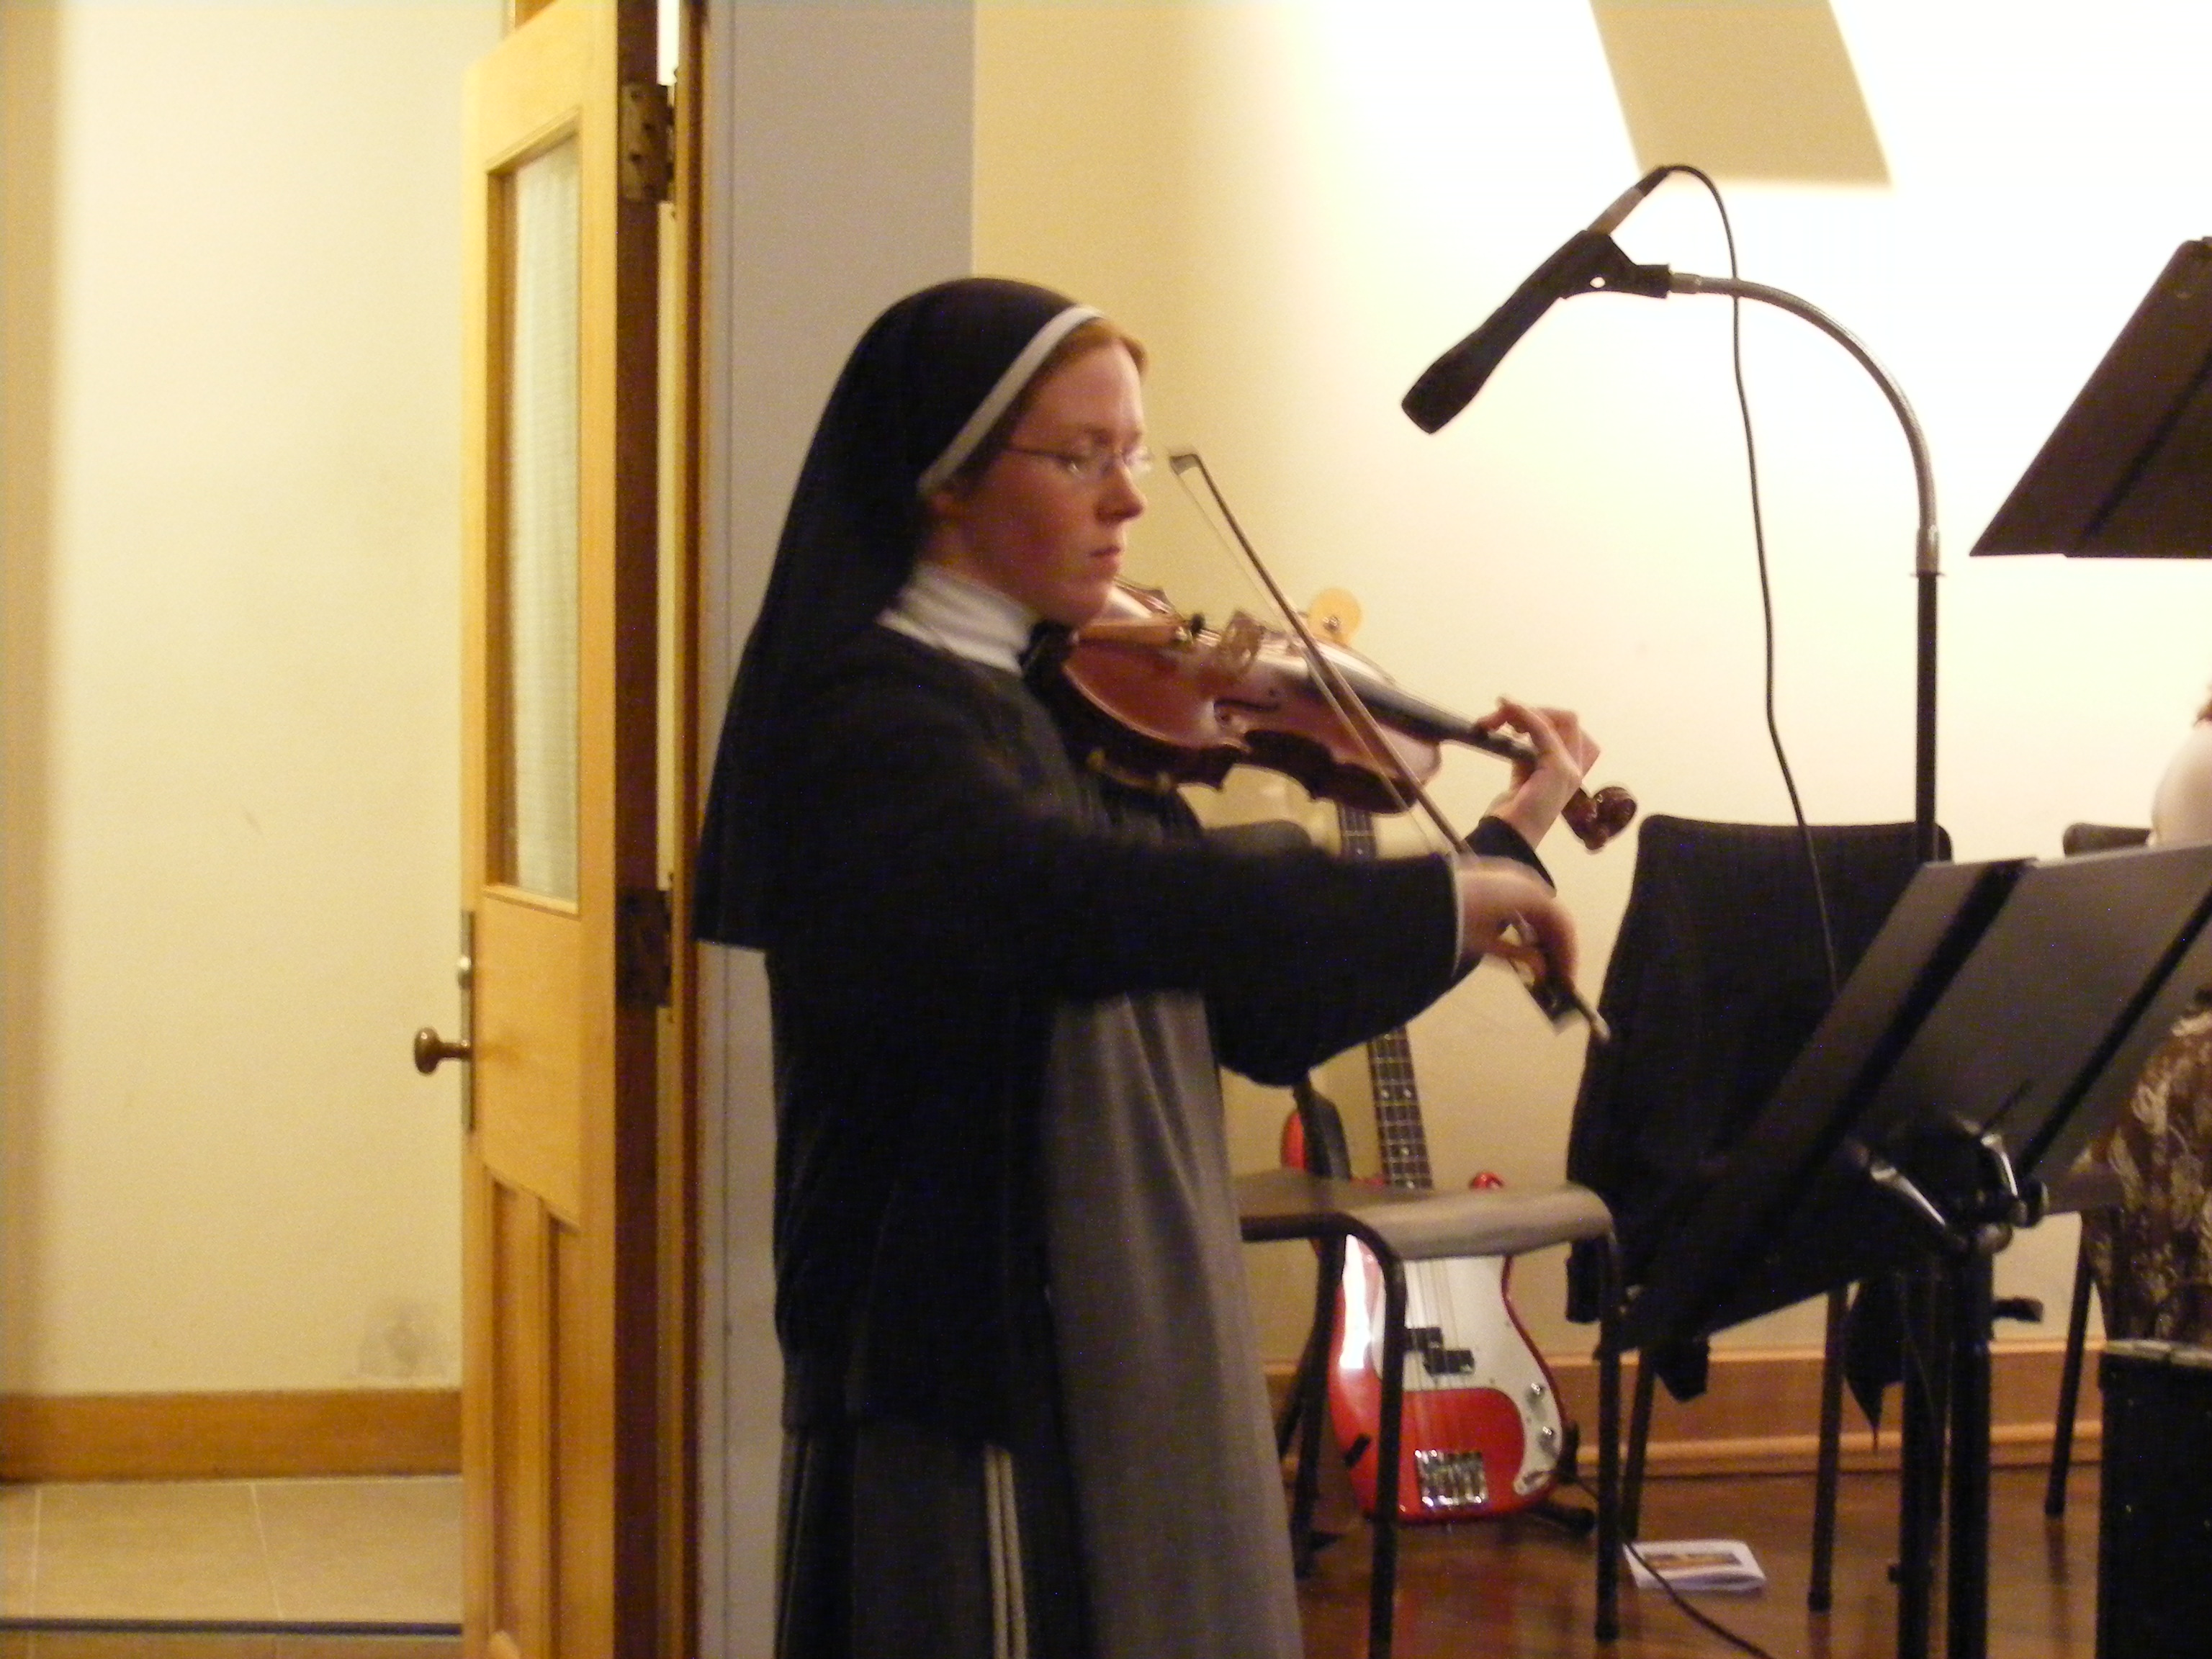 Sr Ilaria playing the Violin